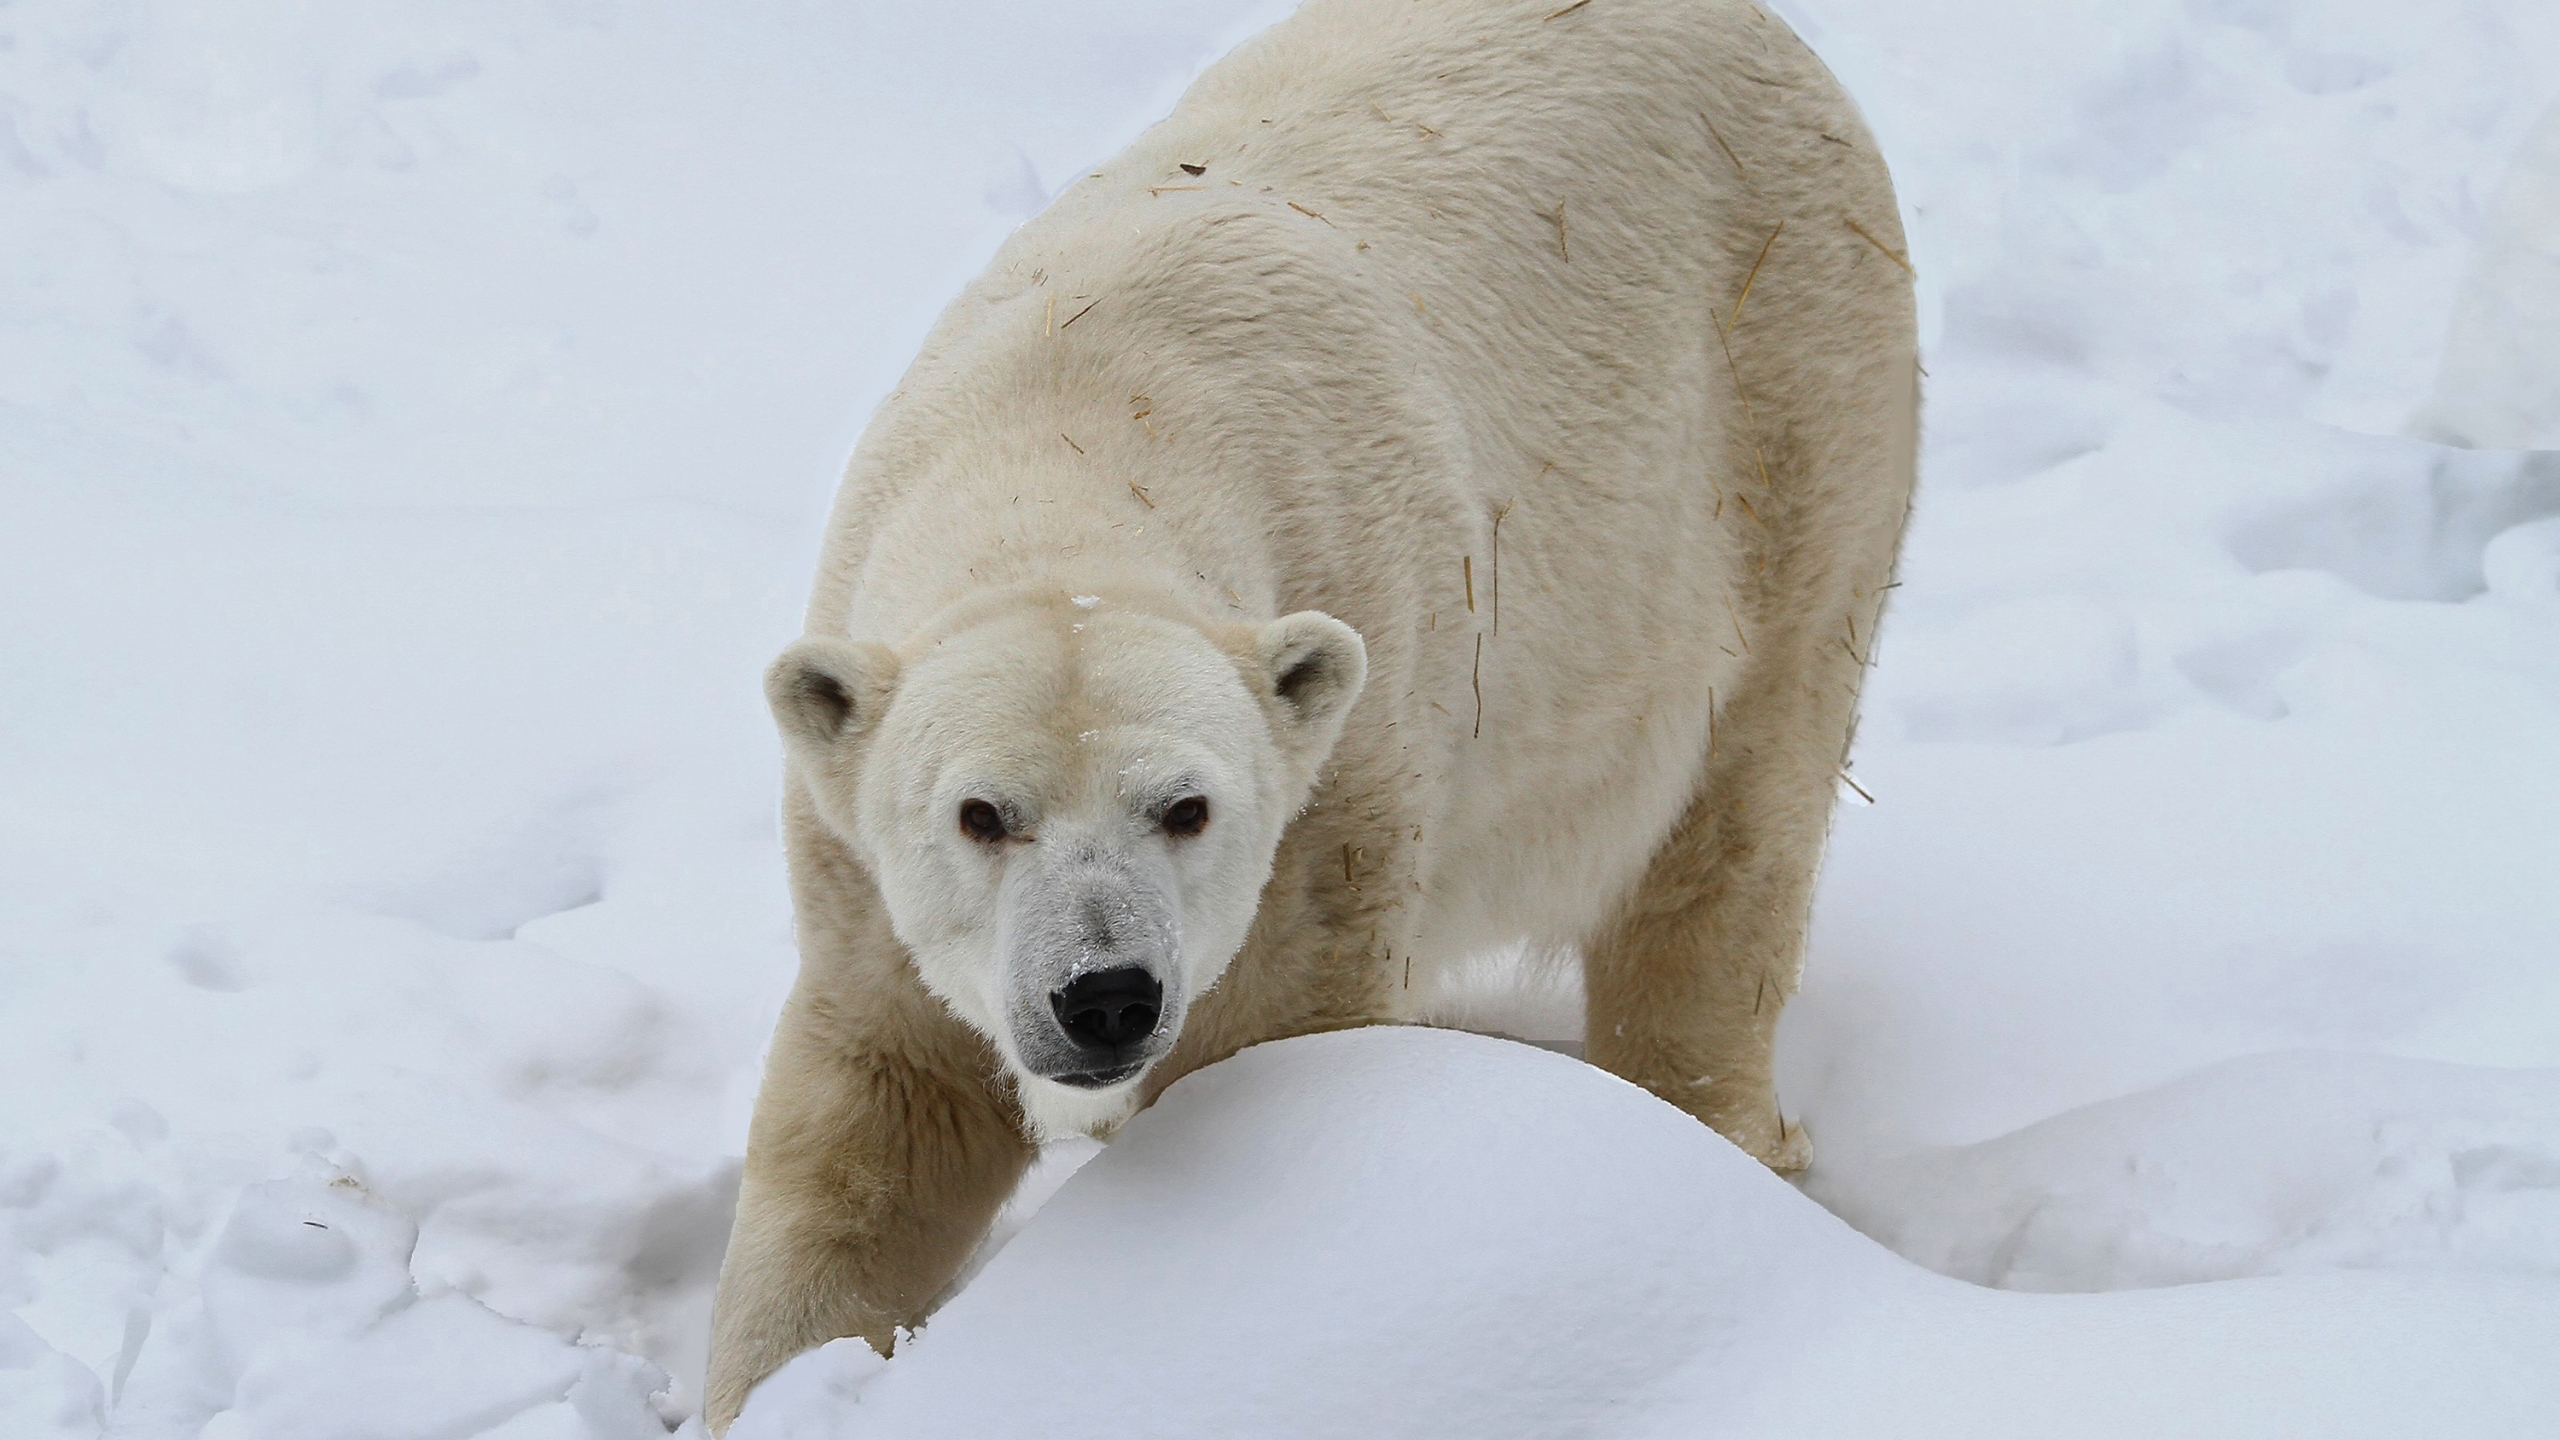 Zoo_Polar_Bear_Dies_12177-159532.jpg95970459